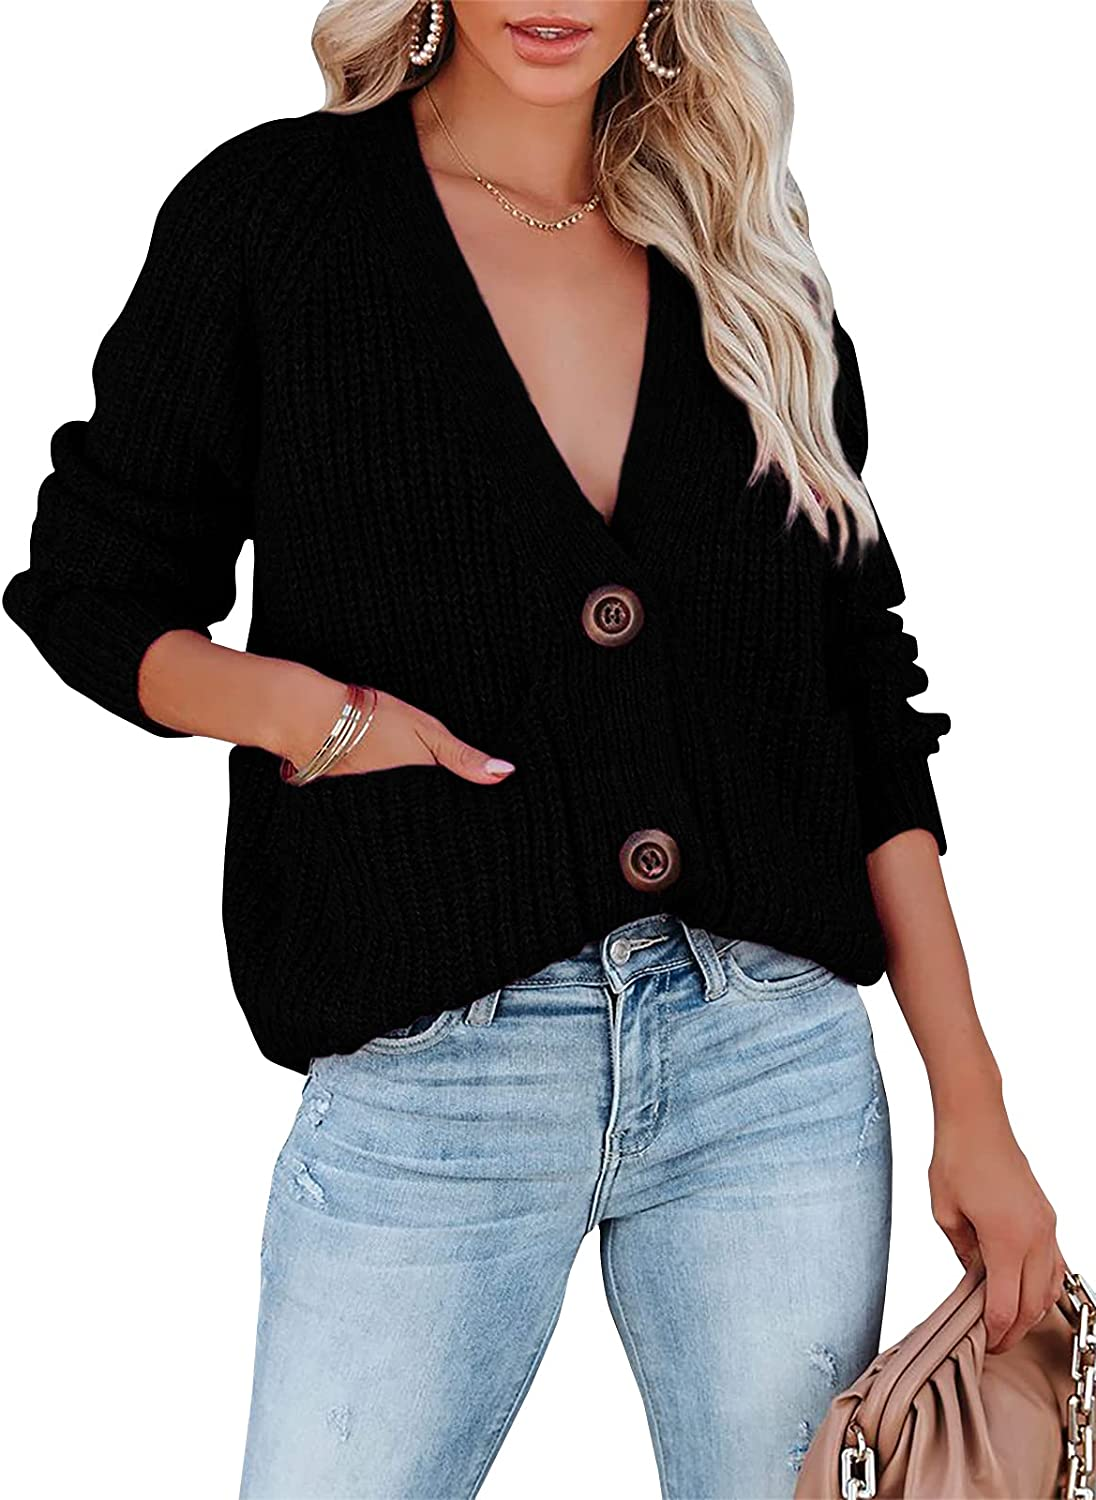 Women's Long Sleeve V Neck Button Down Cardigan Sweaters Rib Knit Open Front Pocket Casual Loose Sweater Tops